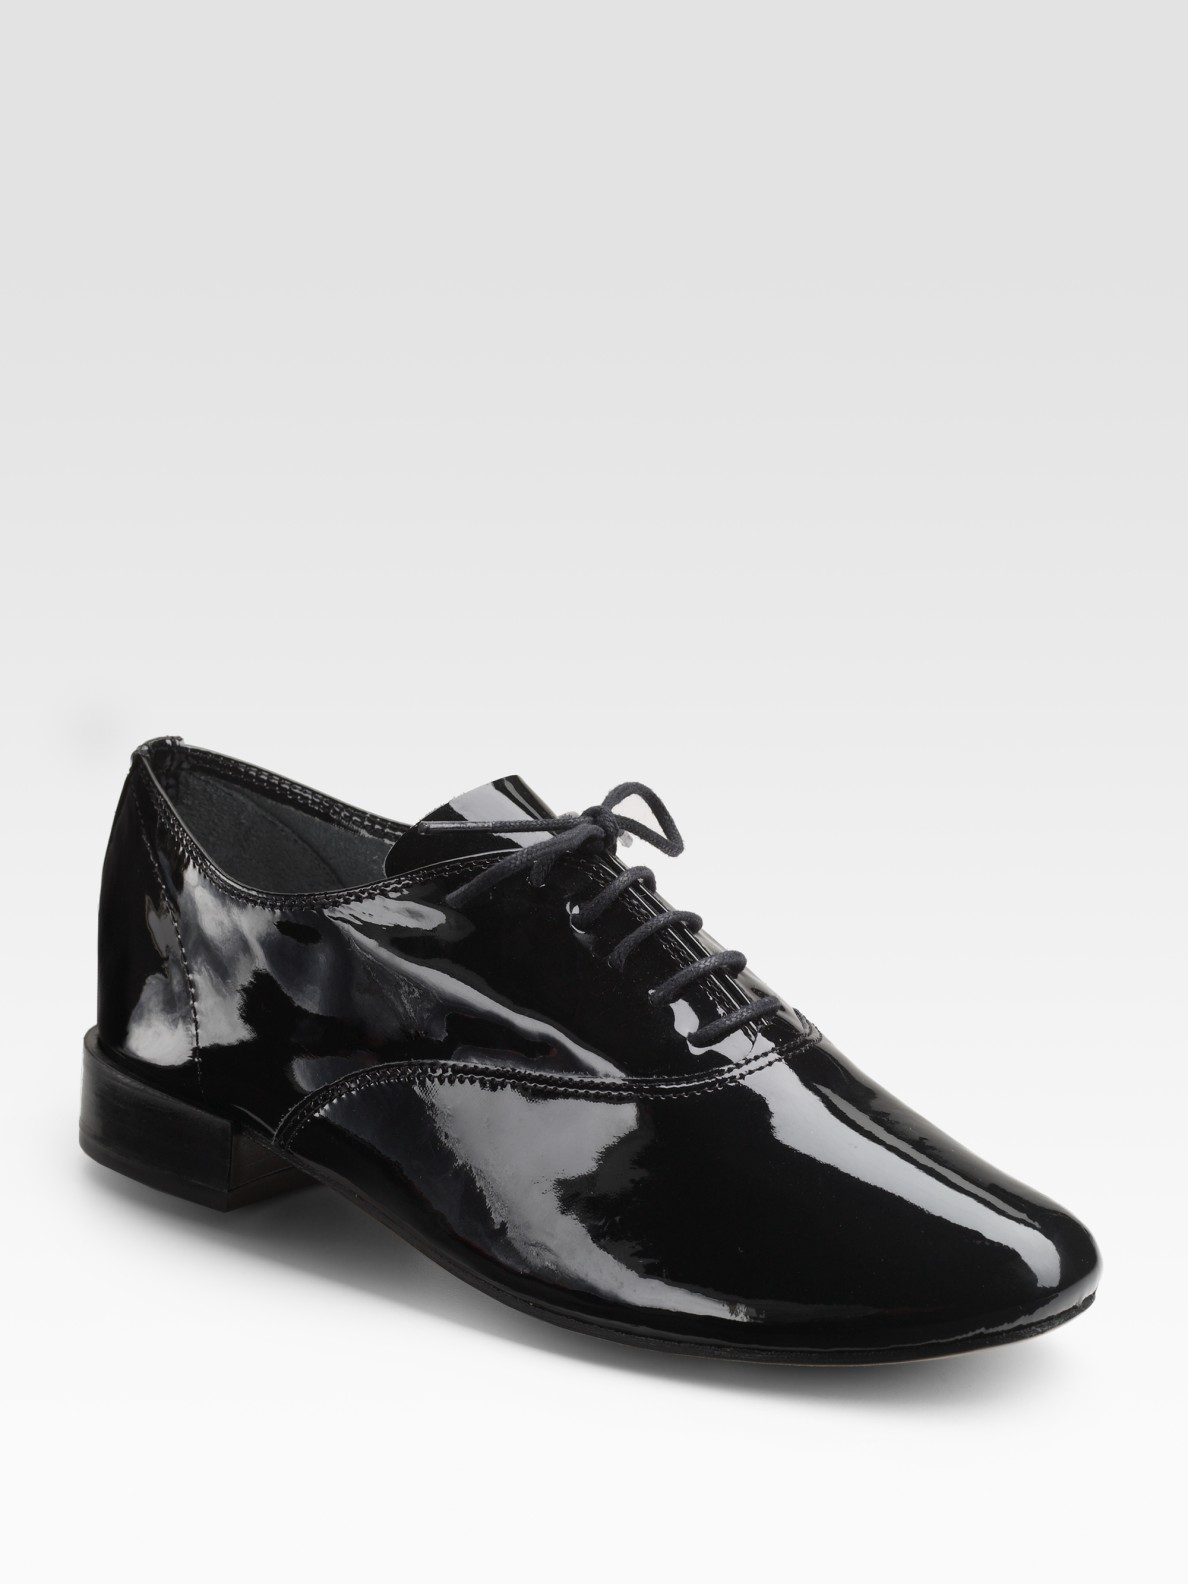 Geniue Stockist Sale Online Many Kinds Of Black Patent Zizi Oxfords Repetto 6NFh4